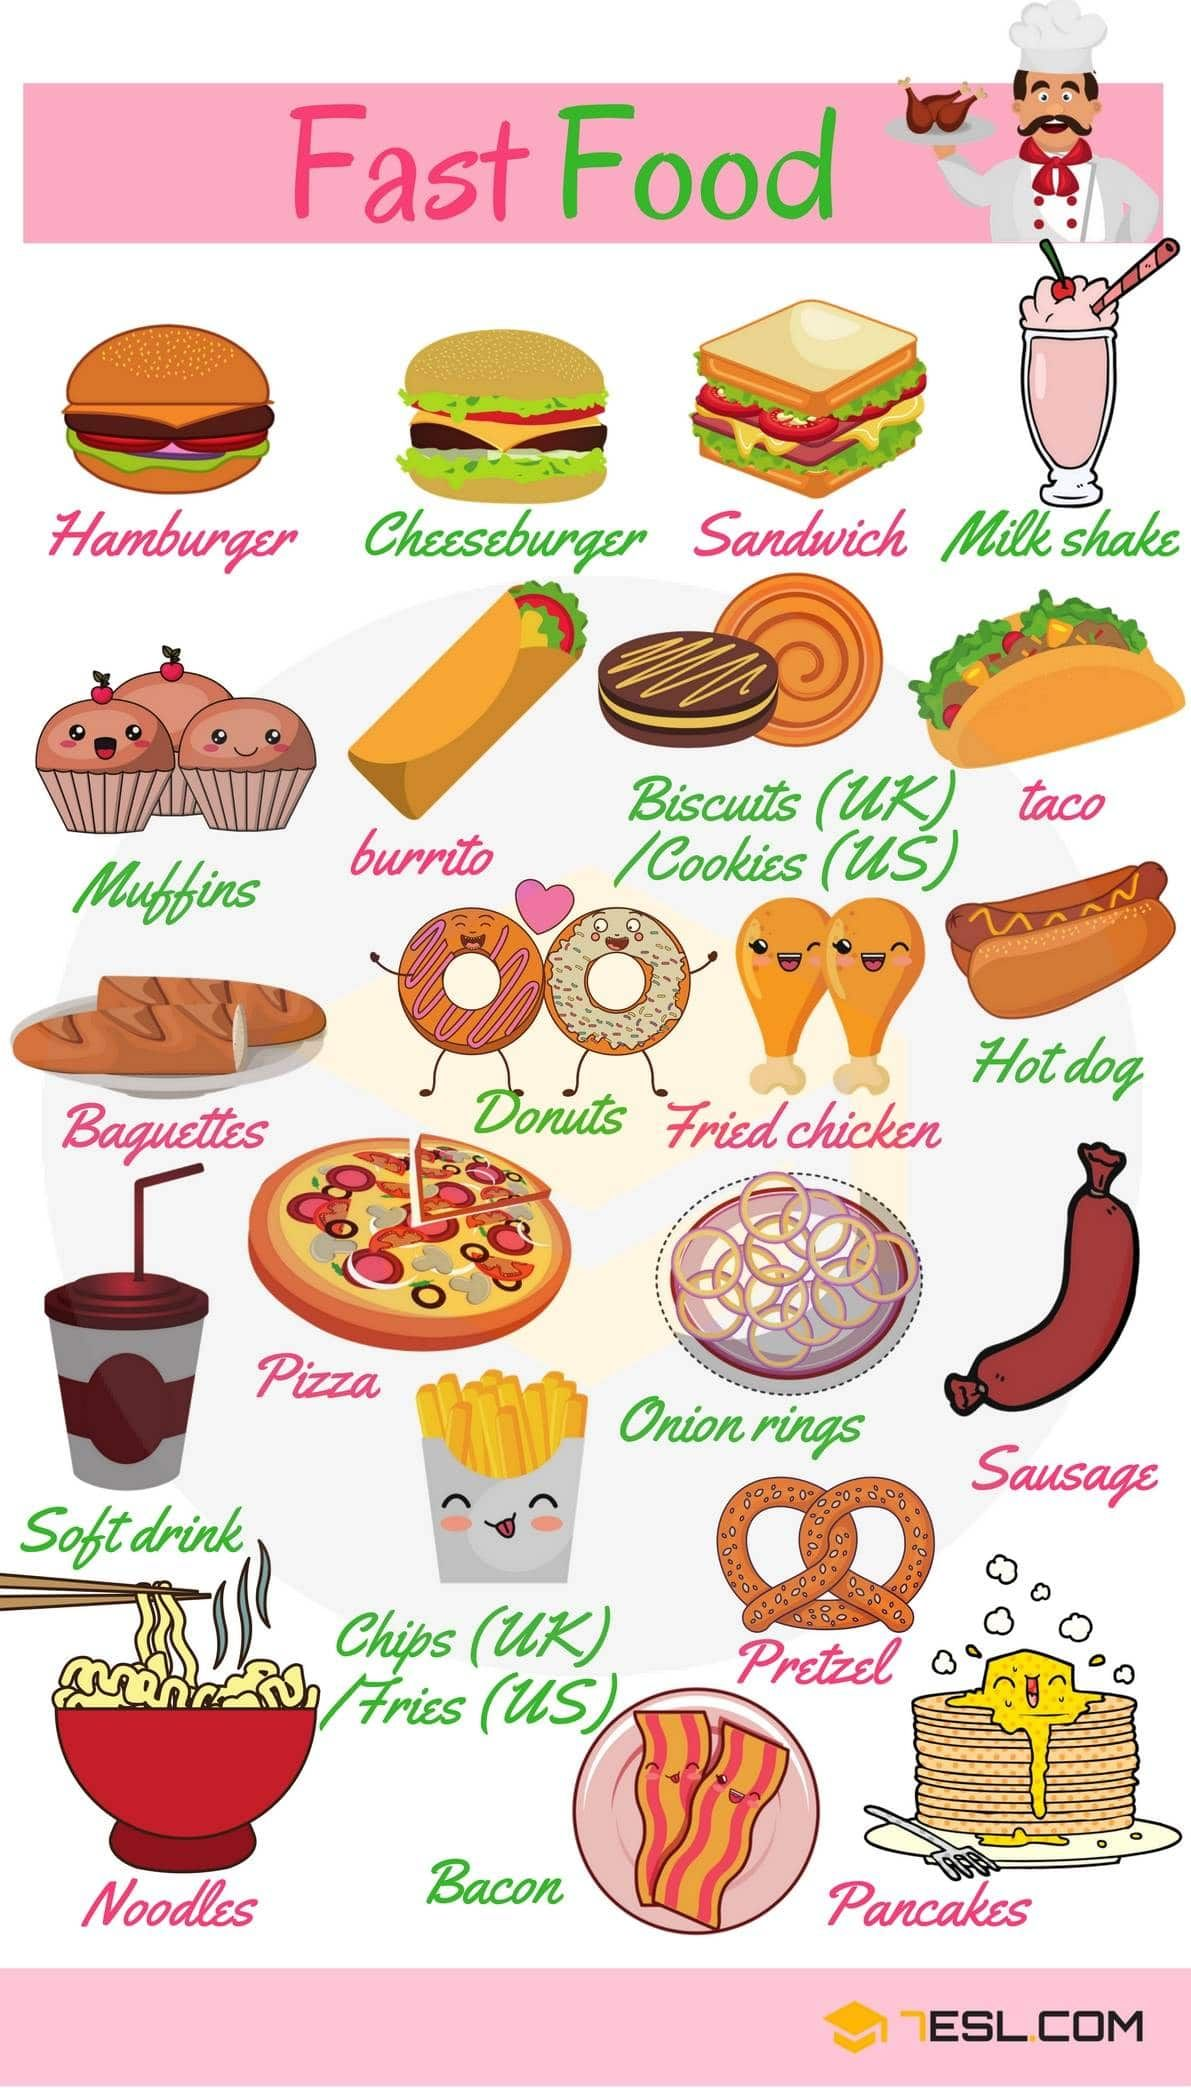 Fast Food List: Types of Fast Food with Pictures | English ...